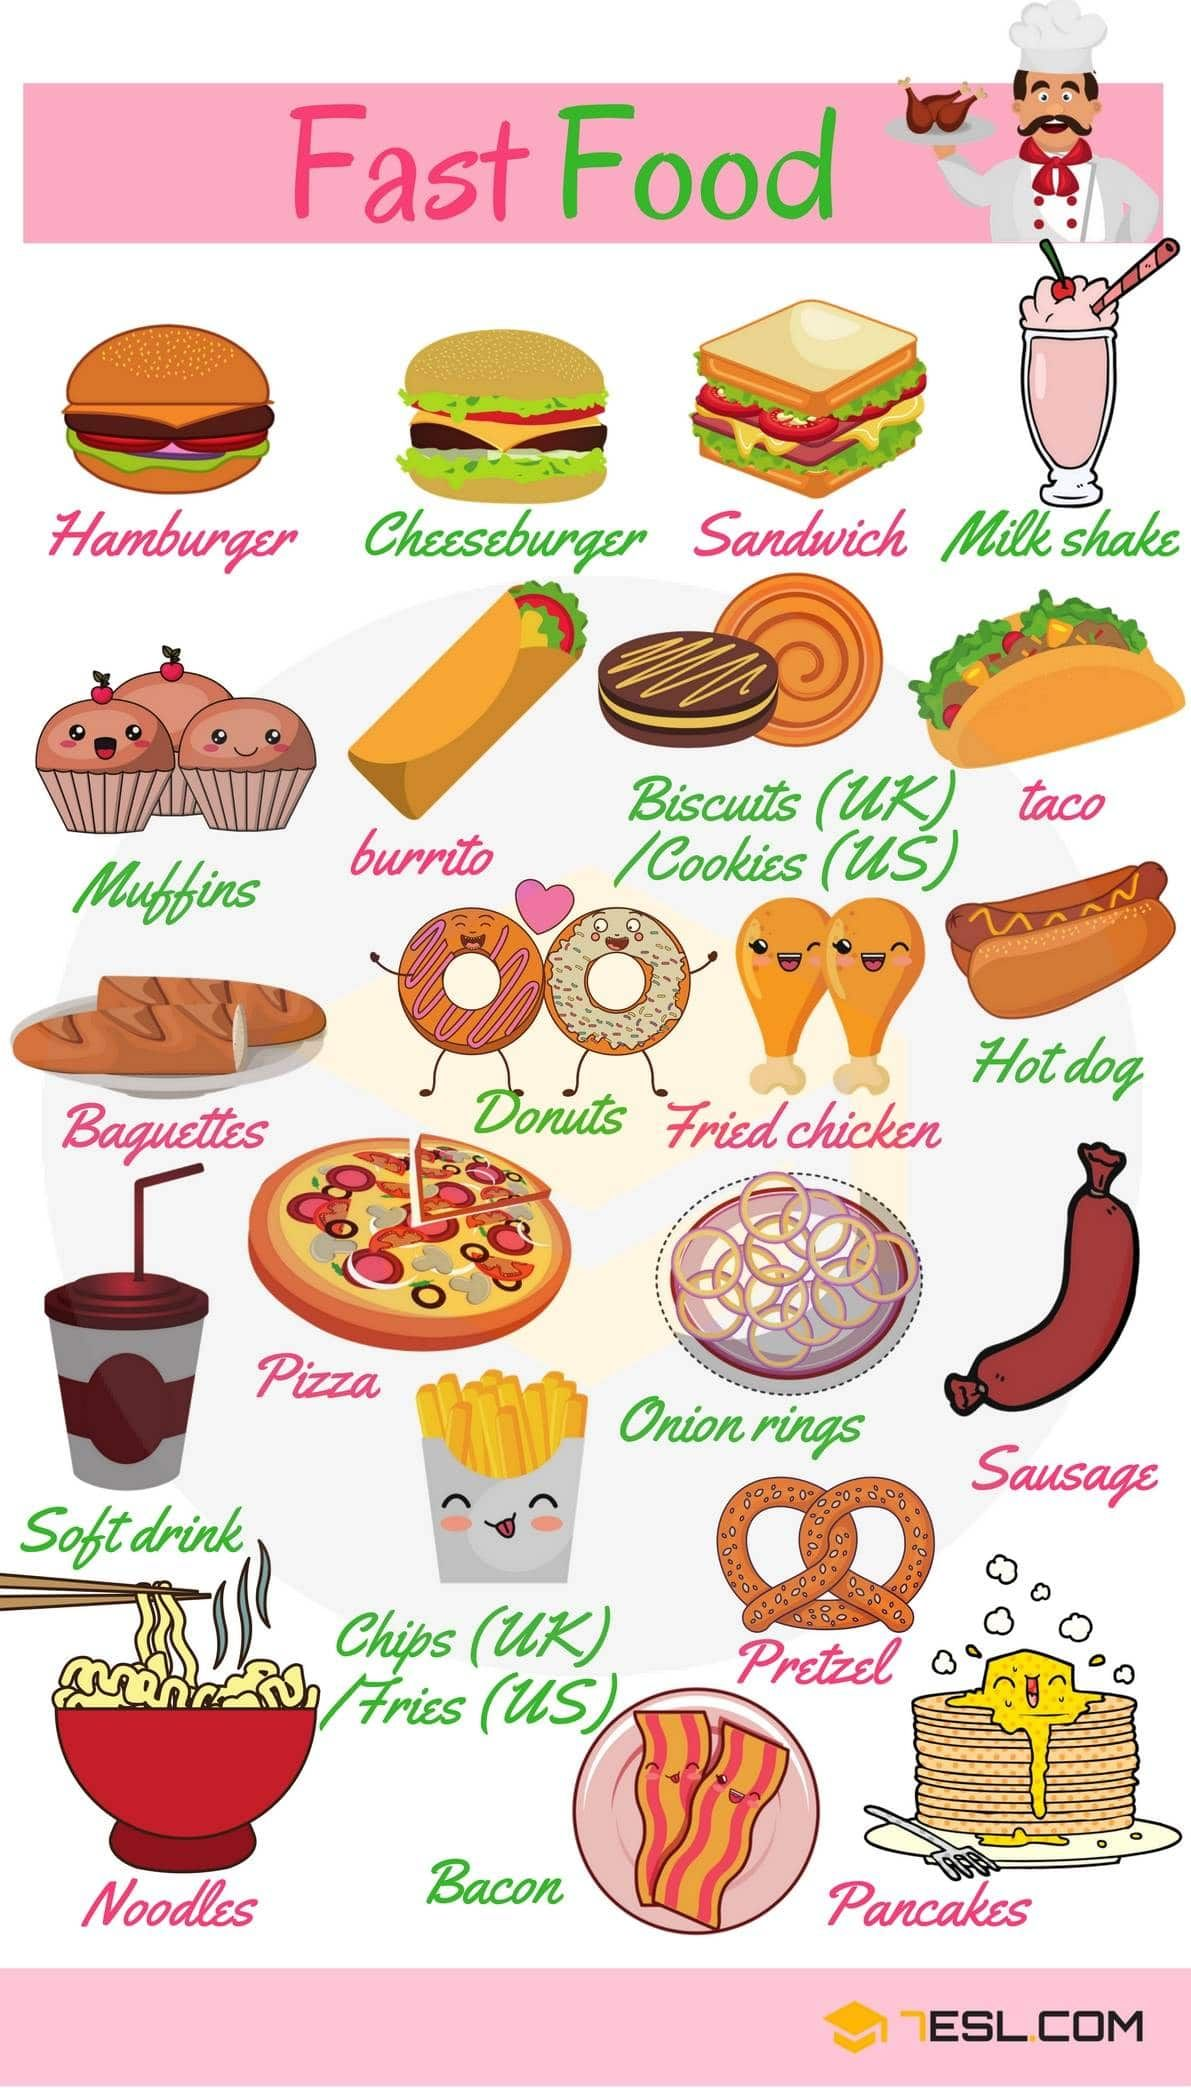 Fast Food List: Types of Fast Food with Pictures | English ...